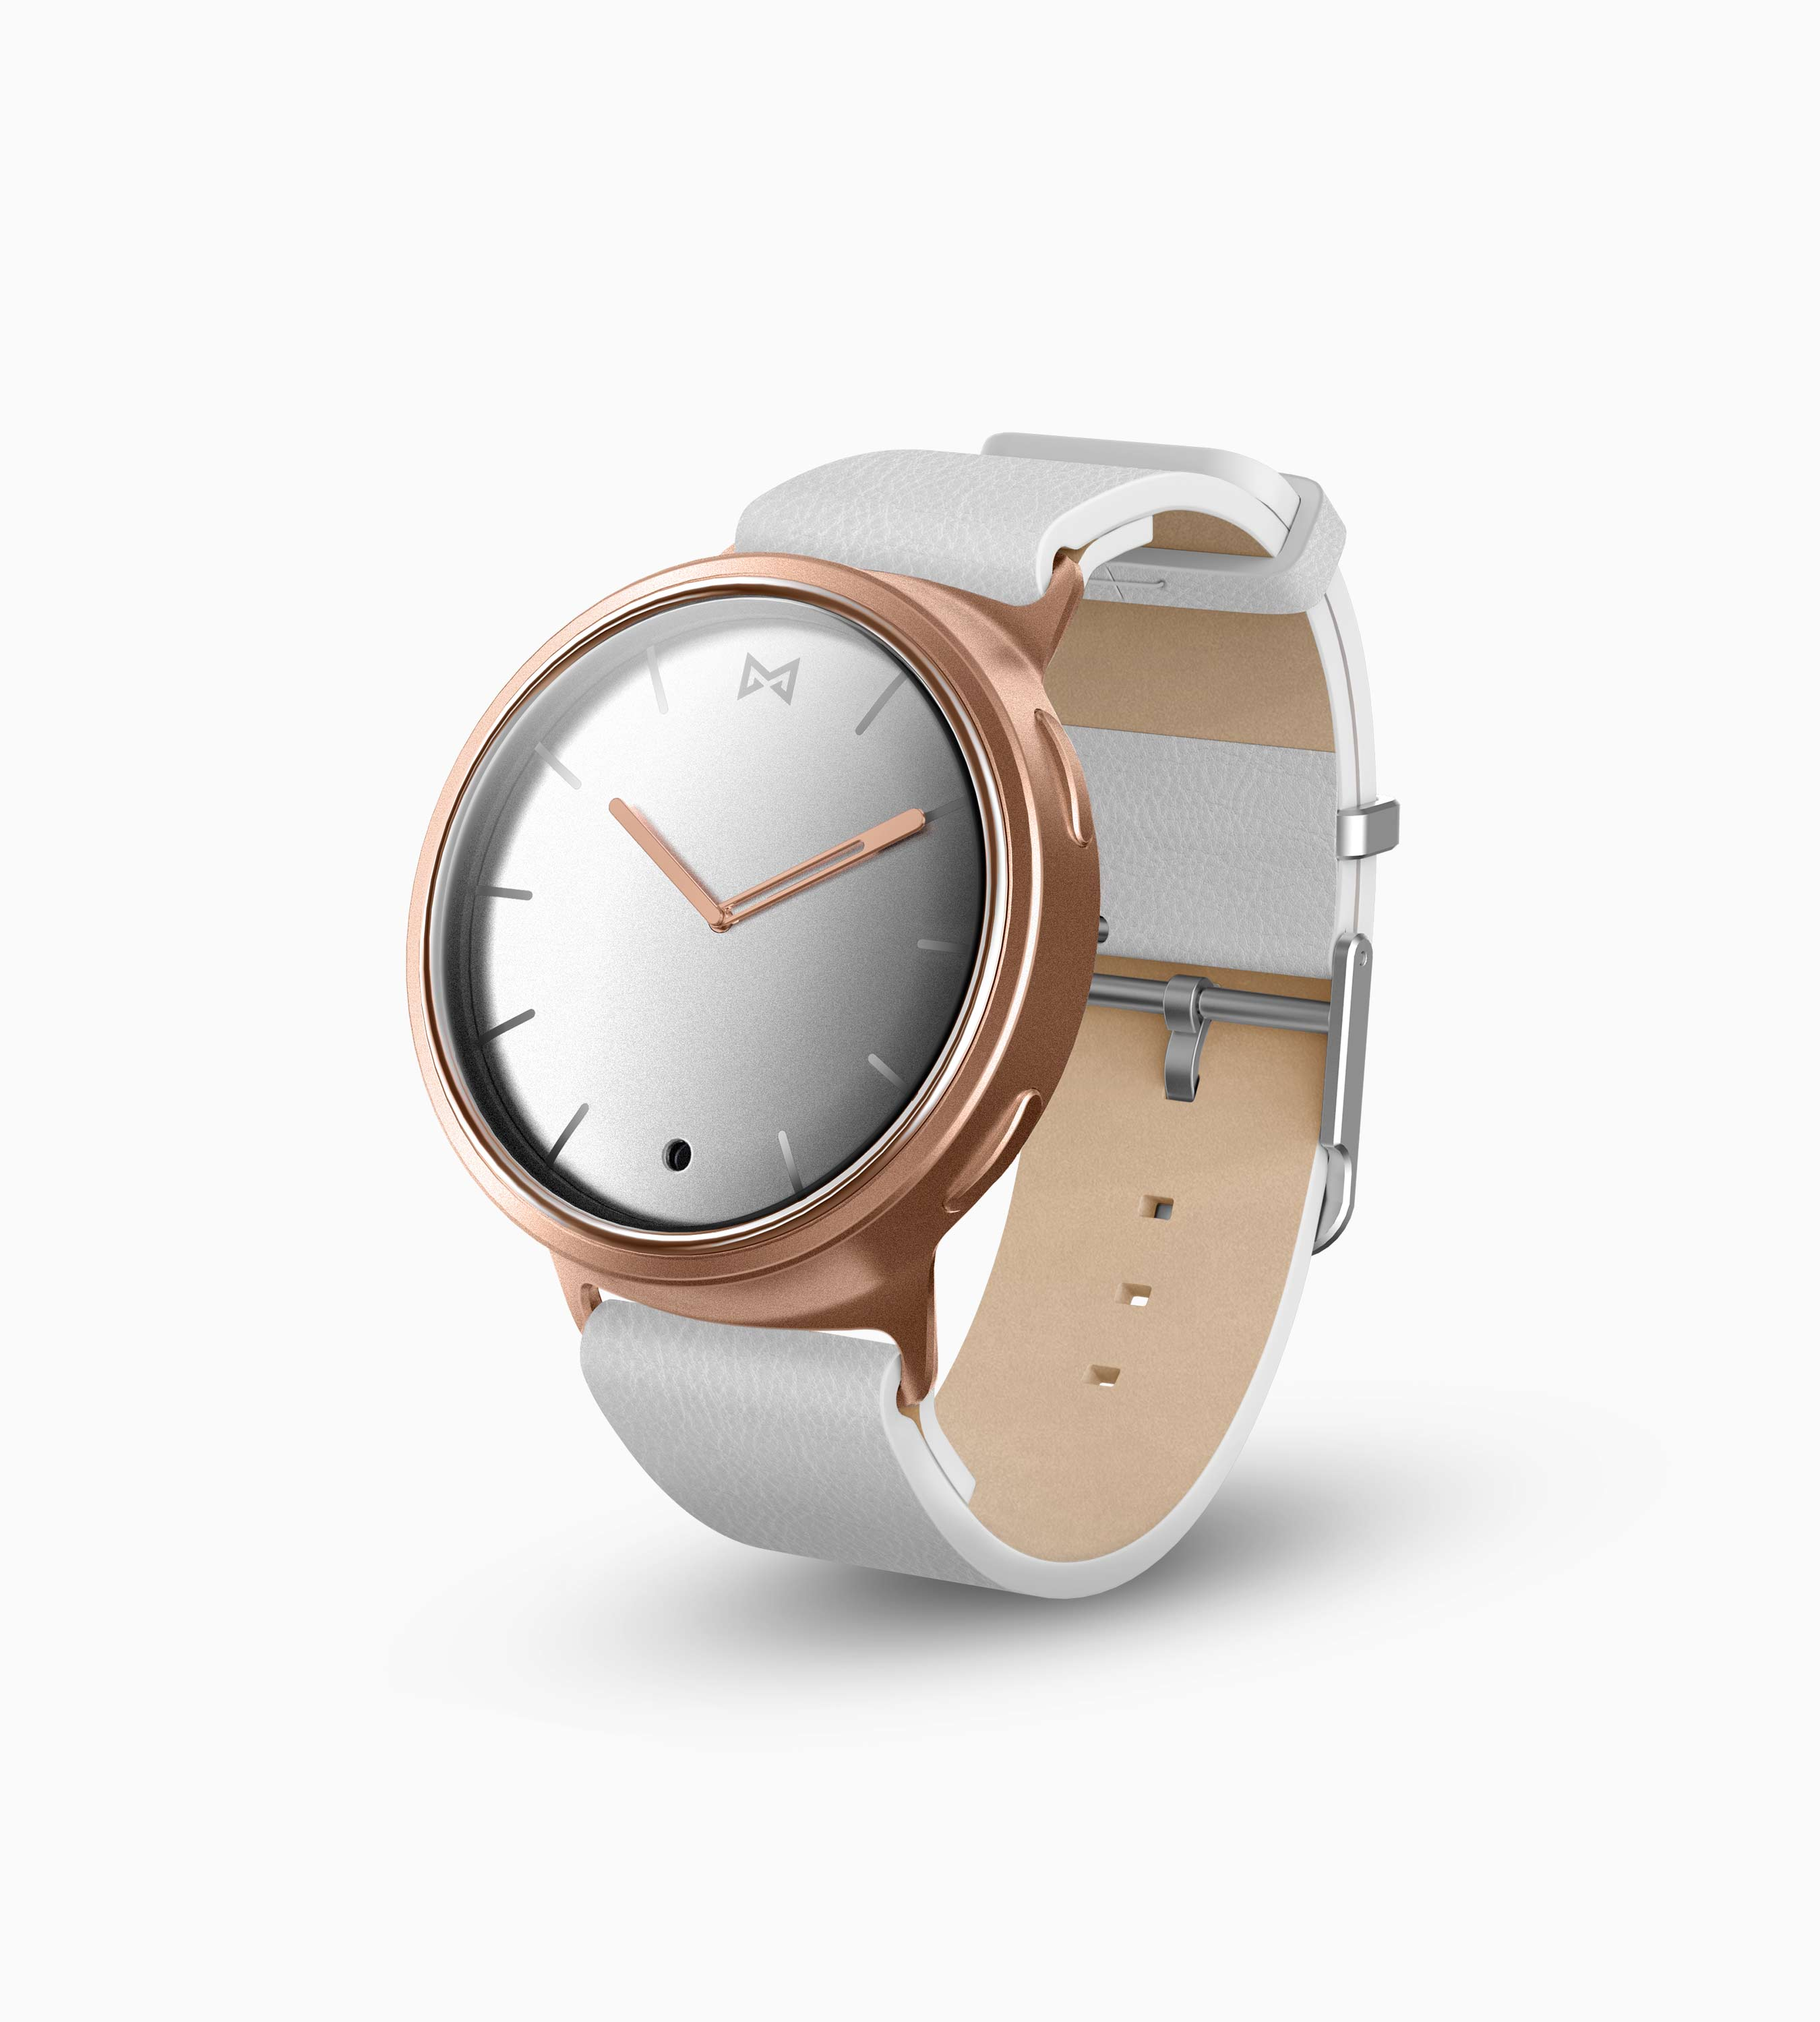 Misfit Phase Hybrid Smartwatch (Rose Gold & White)